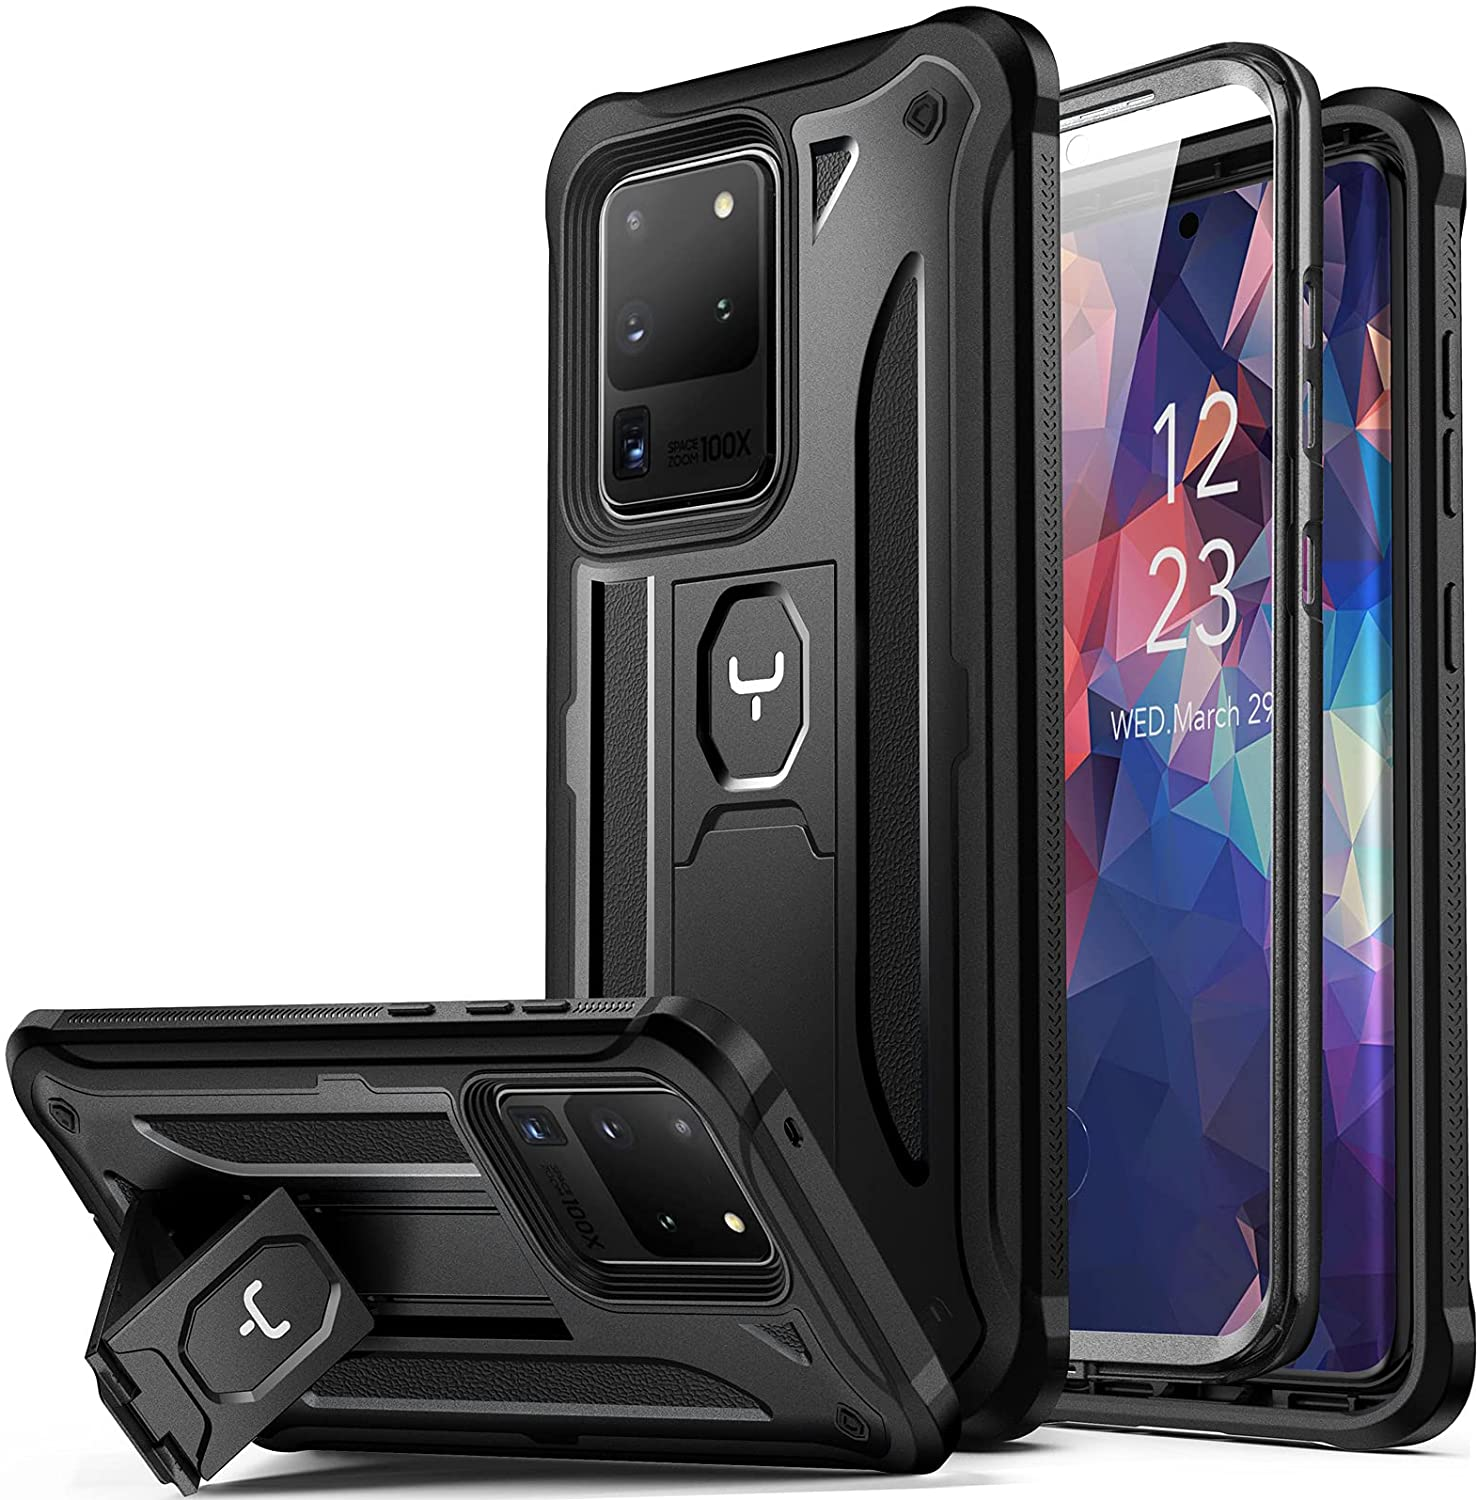 YOUMAKER Designed for Samsung Galaxy S20 Ultra Case with Built-in Screen Protector Work with Fingerprint ID Kickstand Full Body Heavy Duty Shockproof Cover for Galaxy S20 Ultra 5G 6.9 inch - Black